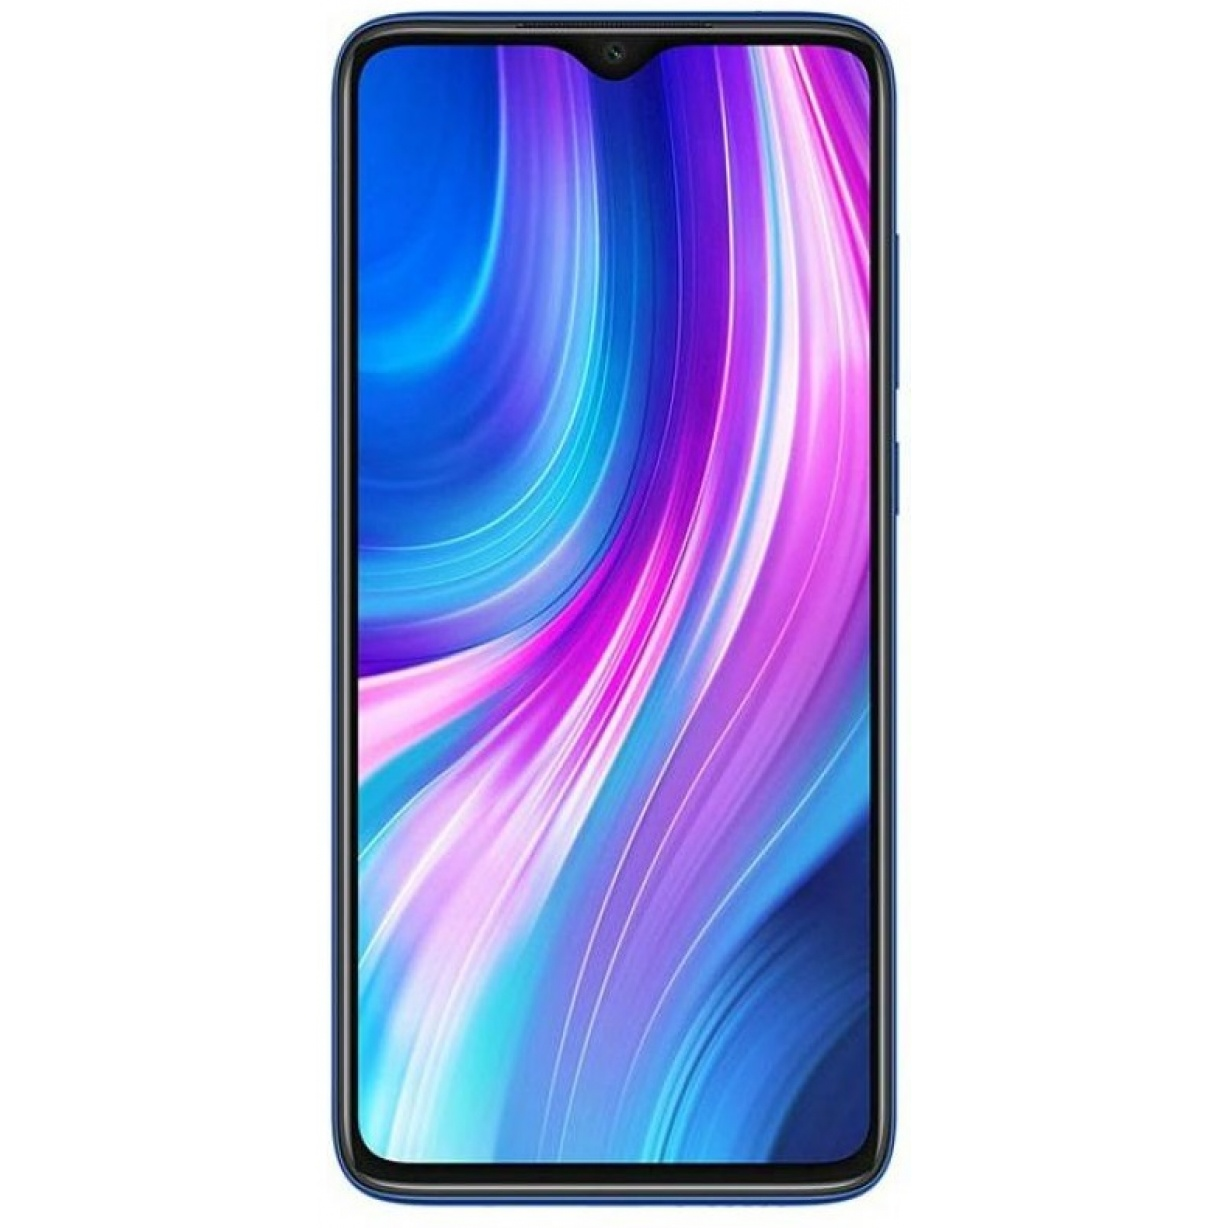 Xiaomi Redmi Note 8 Pro 128GB Dual SIM Electric Blue